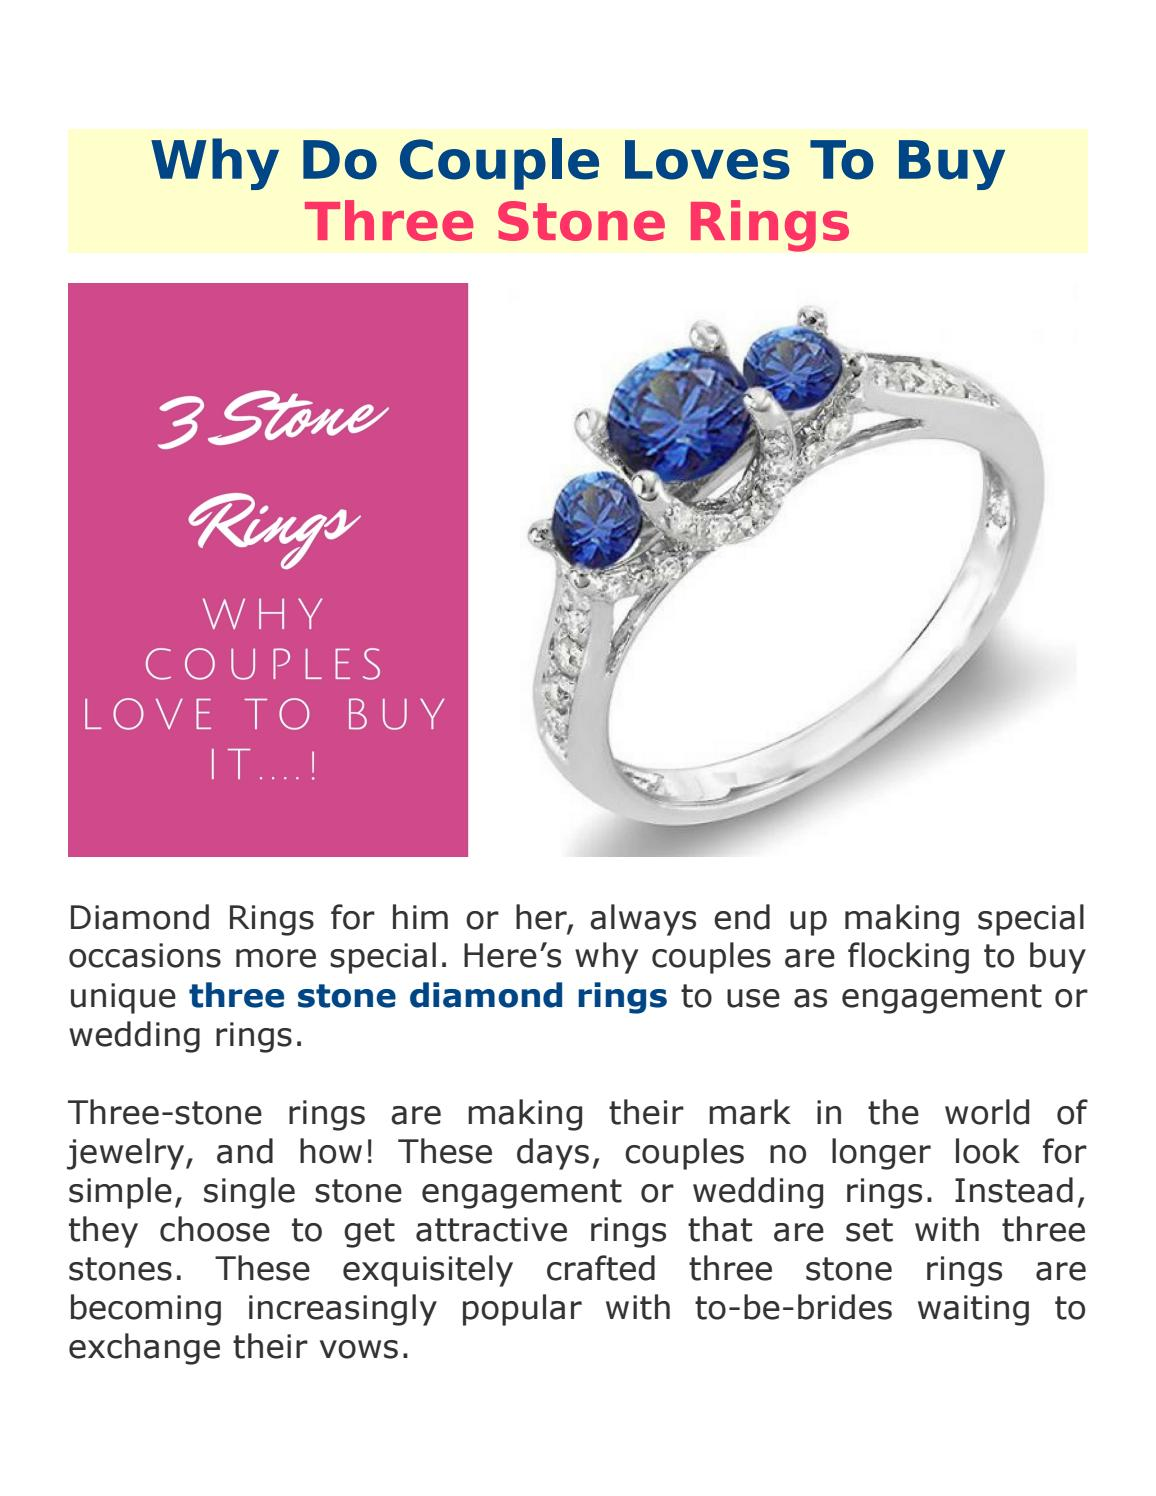 Why do couple loves to buy three stone rings by DazzlingRock - issuu